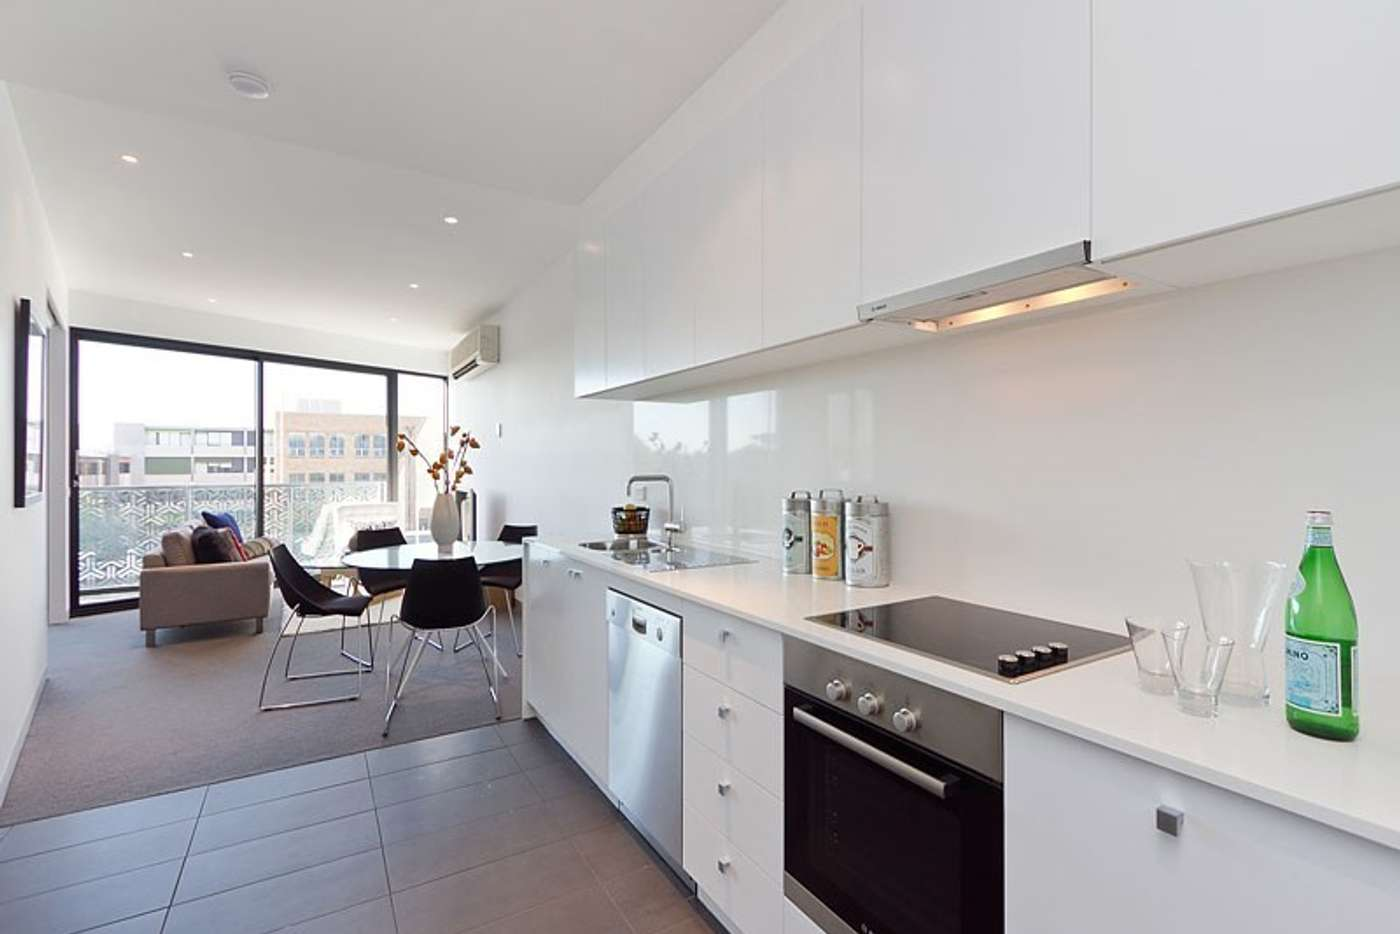 Main view of Homely apartment listing, 403/38 Inkerman Street, St Kilda VIC 3182